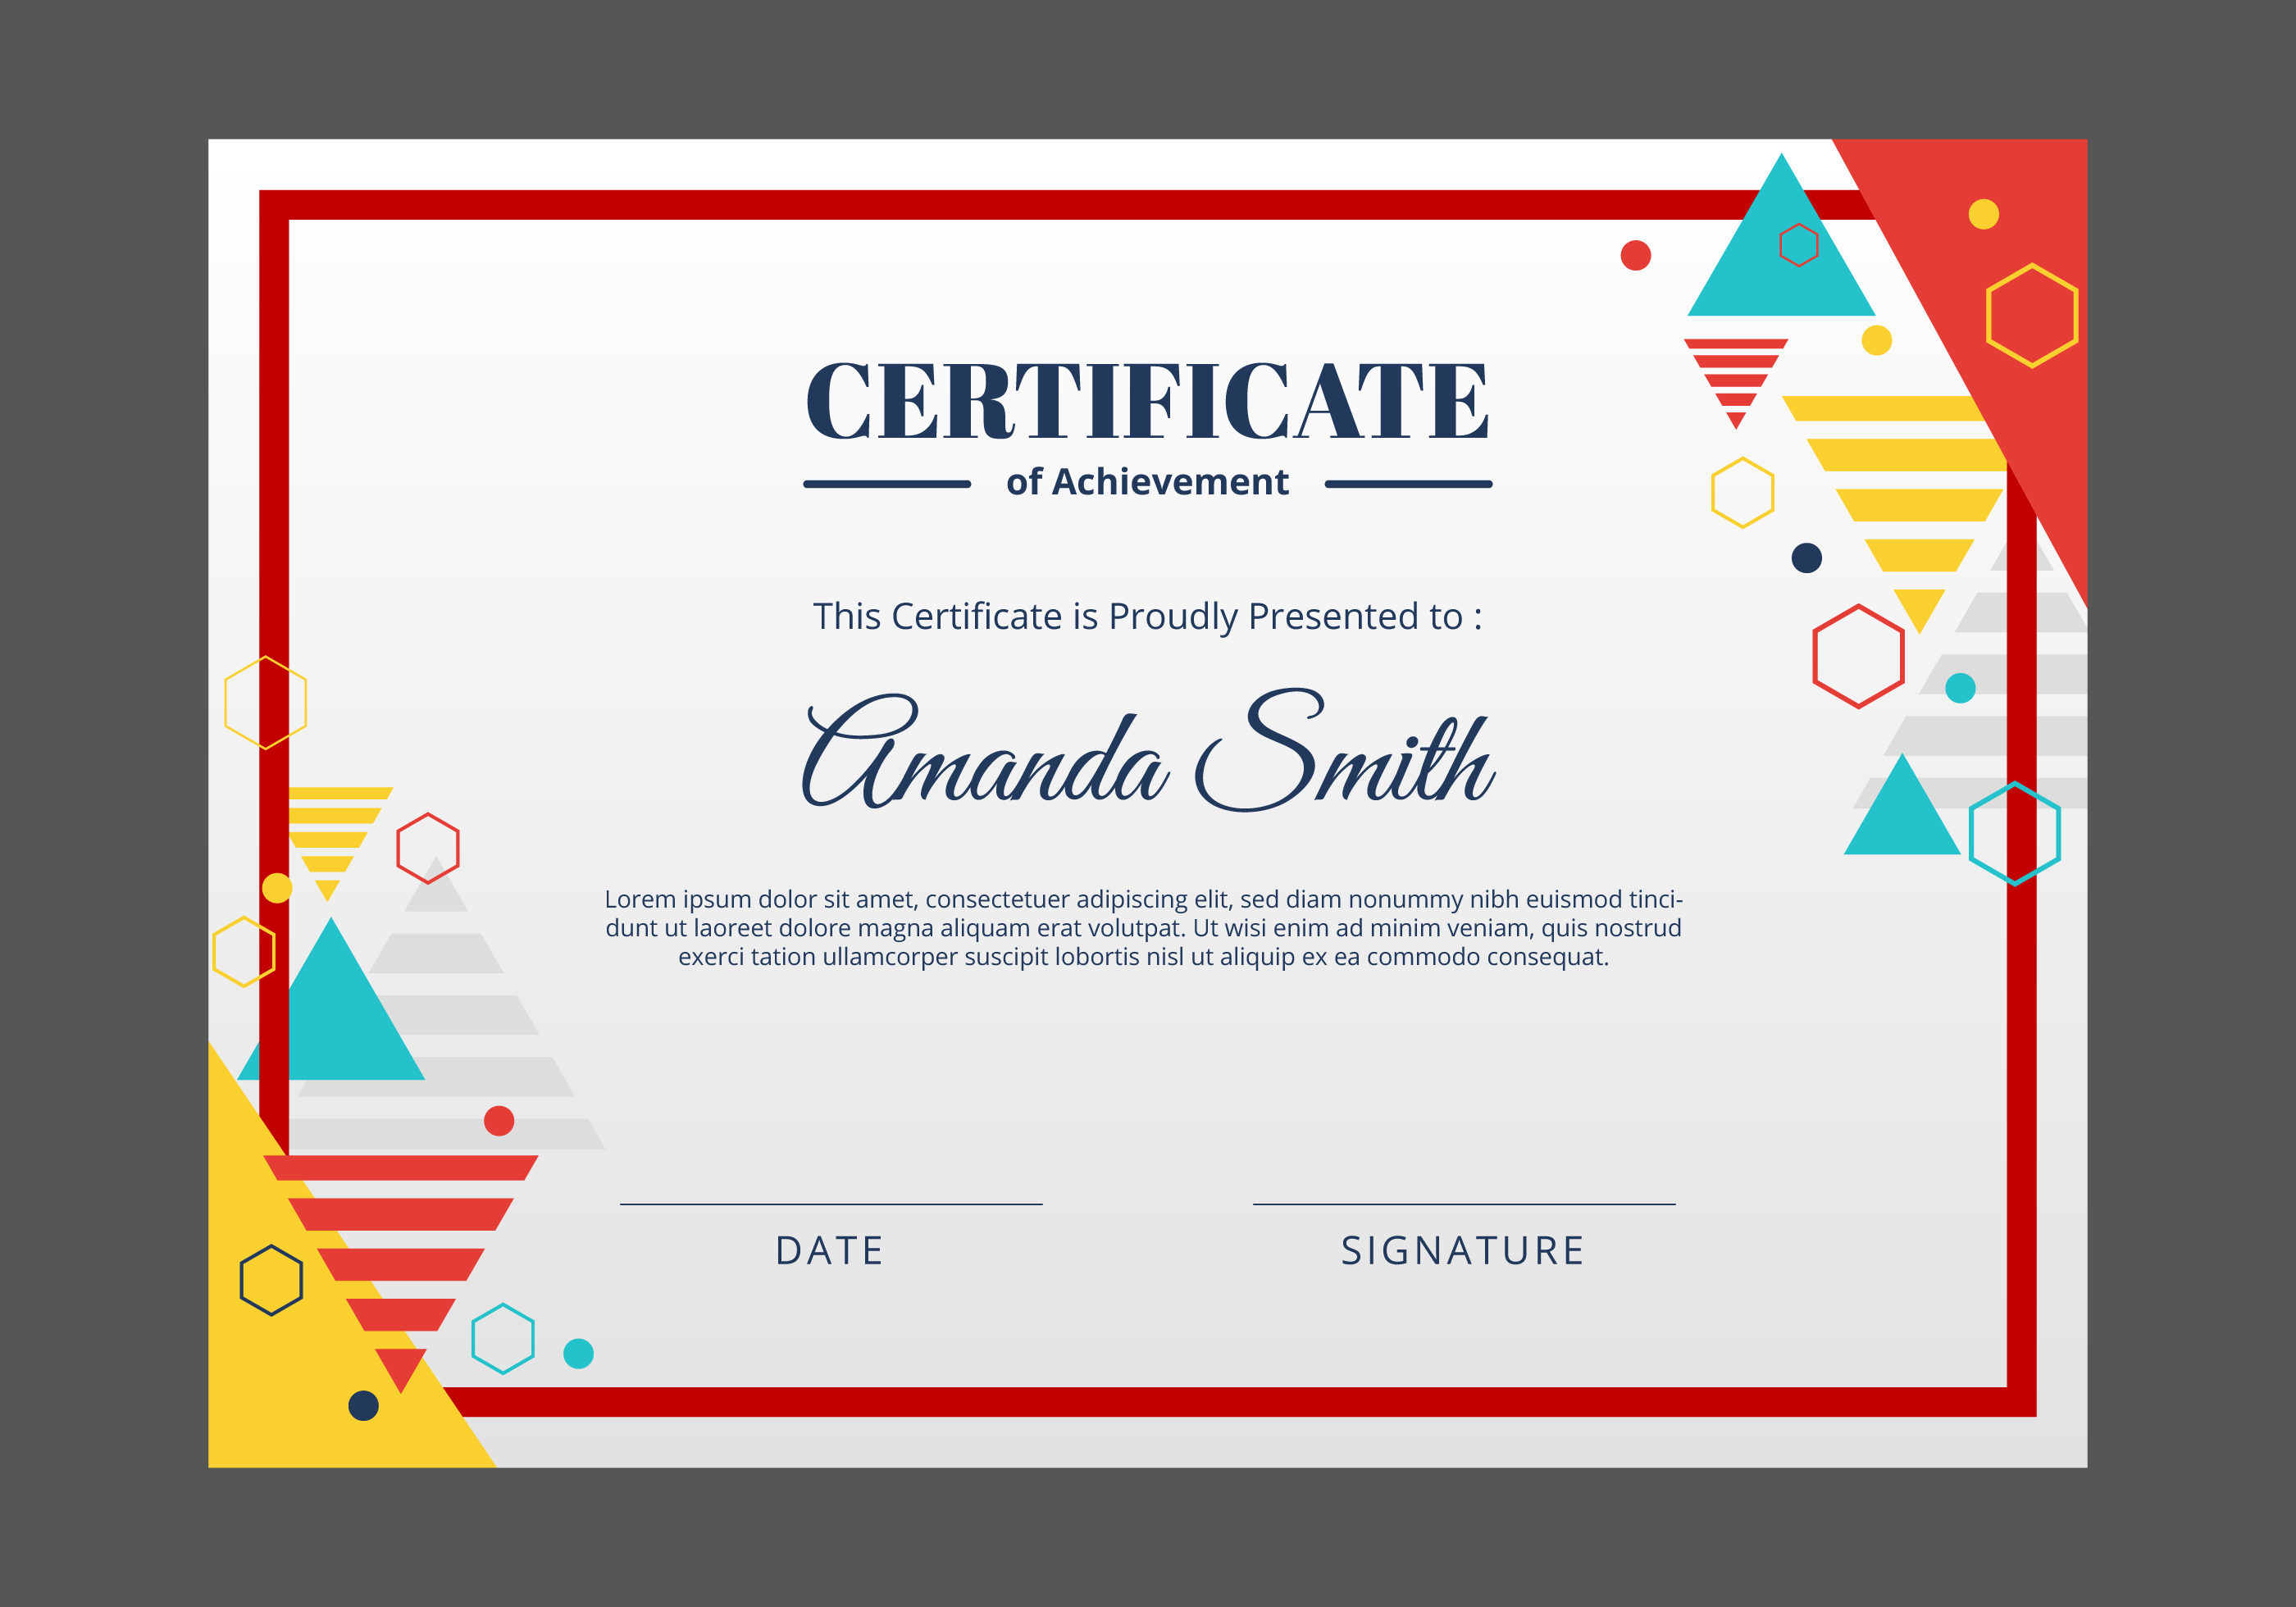 certificate template free vector art 14976 free downloads